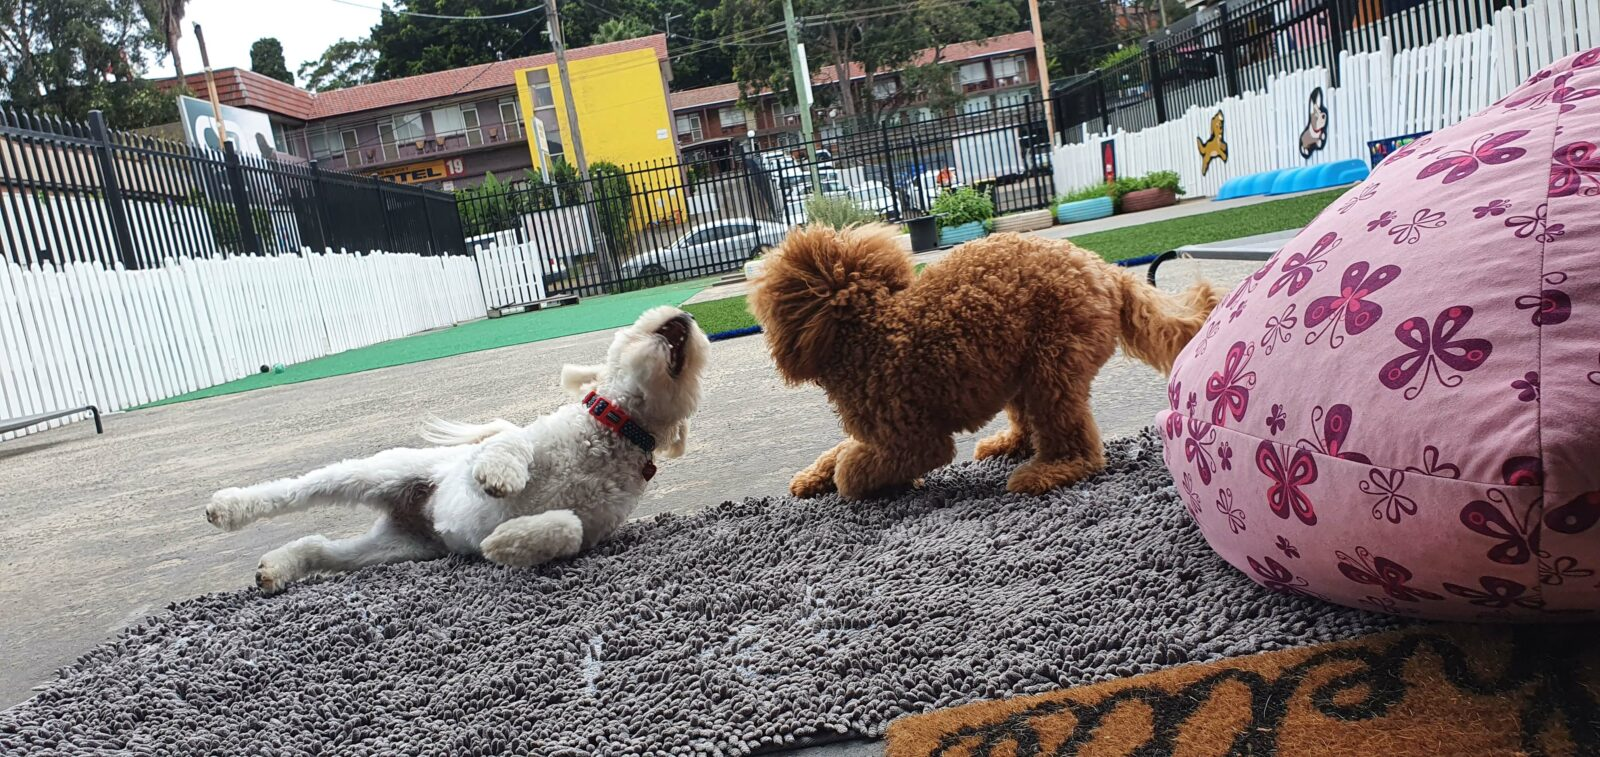 Two little dogs playing